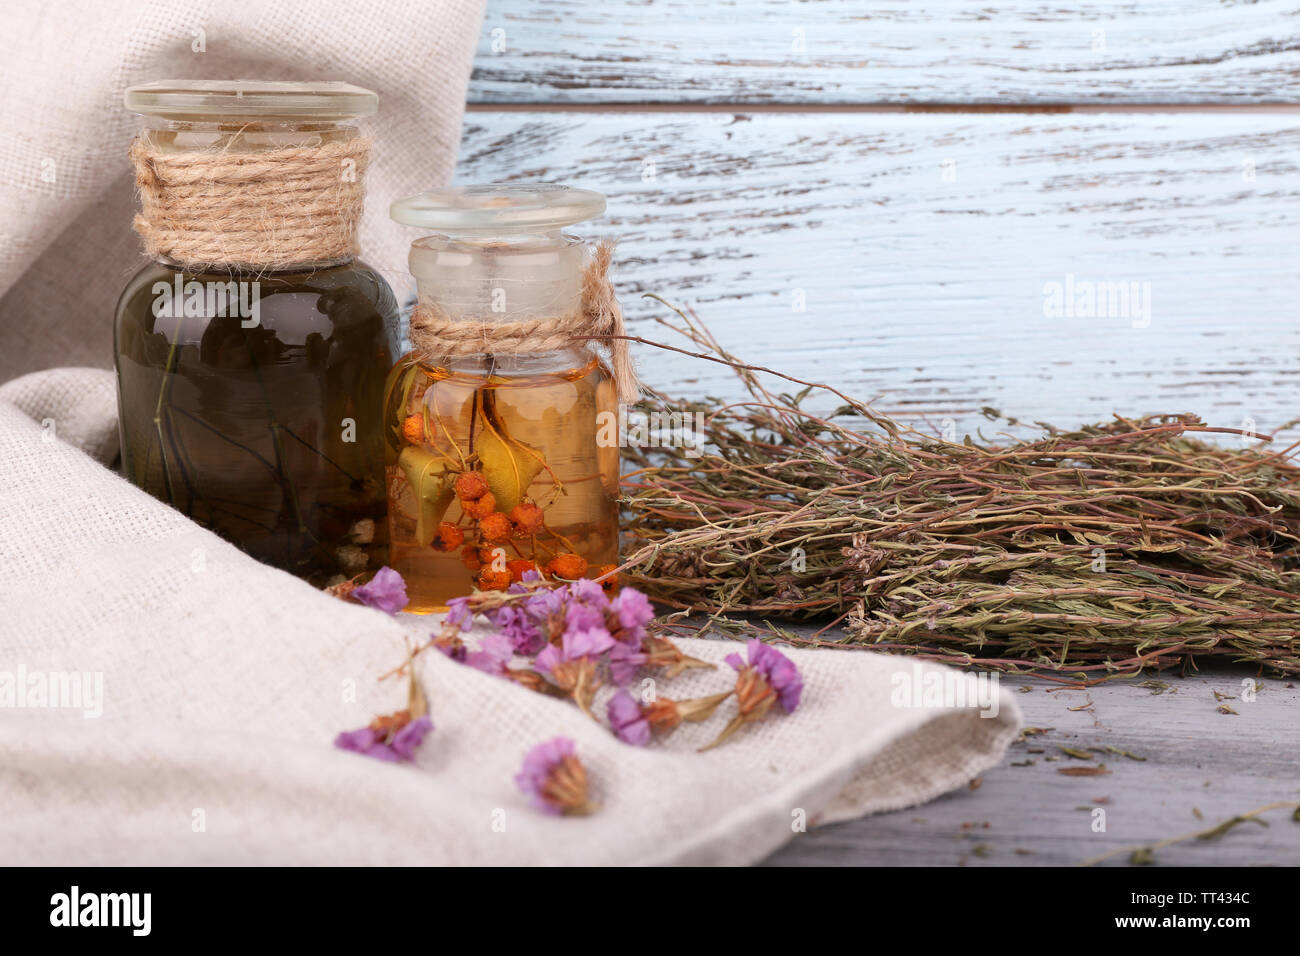 Bottles of herbal tincture and dried herbs on a napkin on wooden background in front of curtain - Stock Image